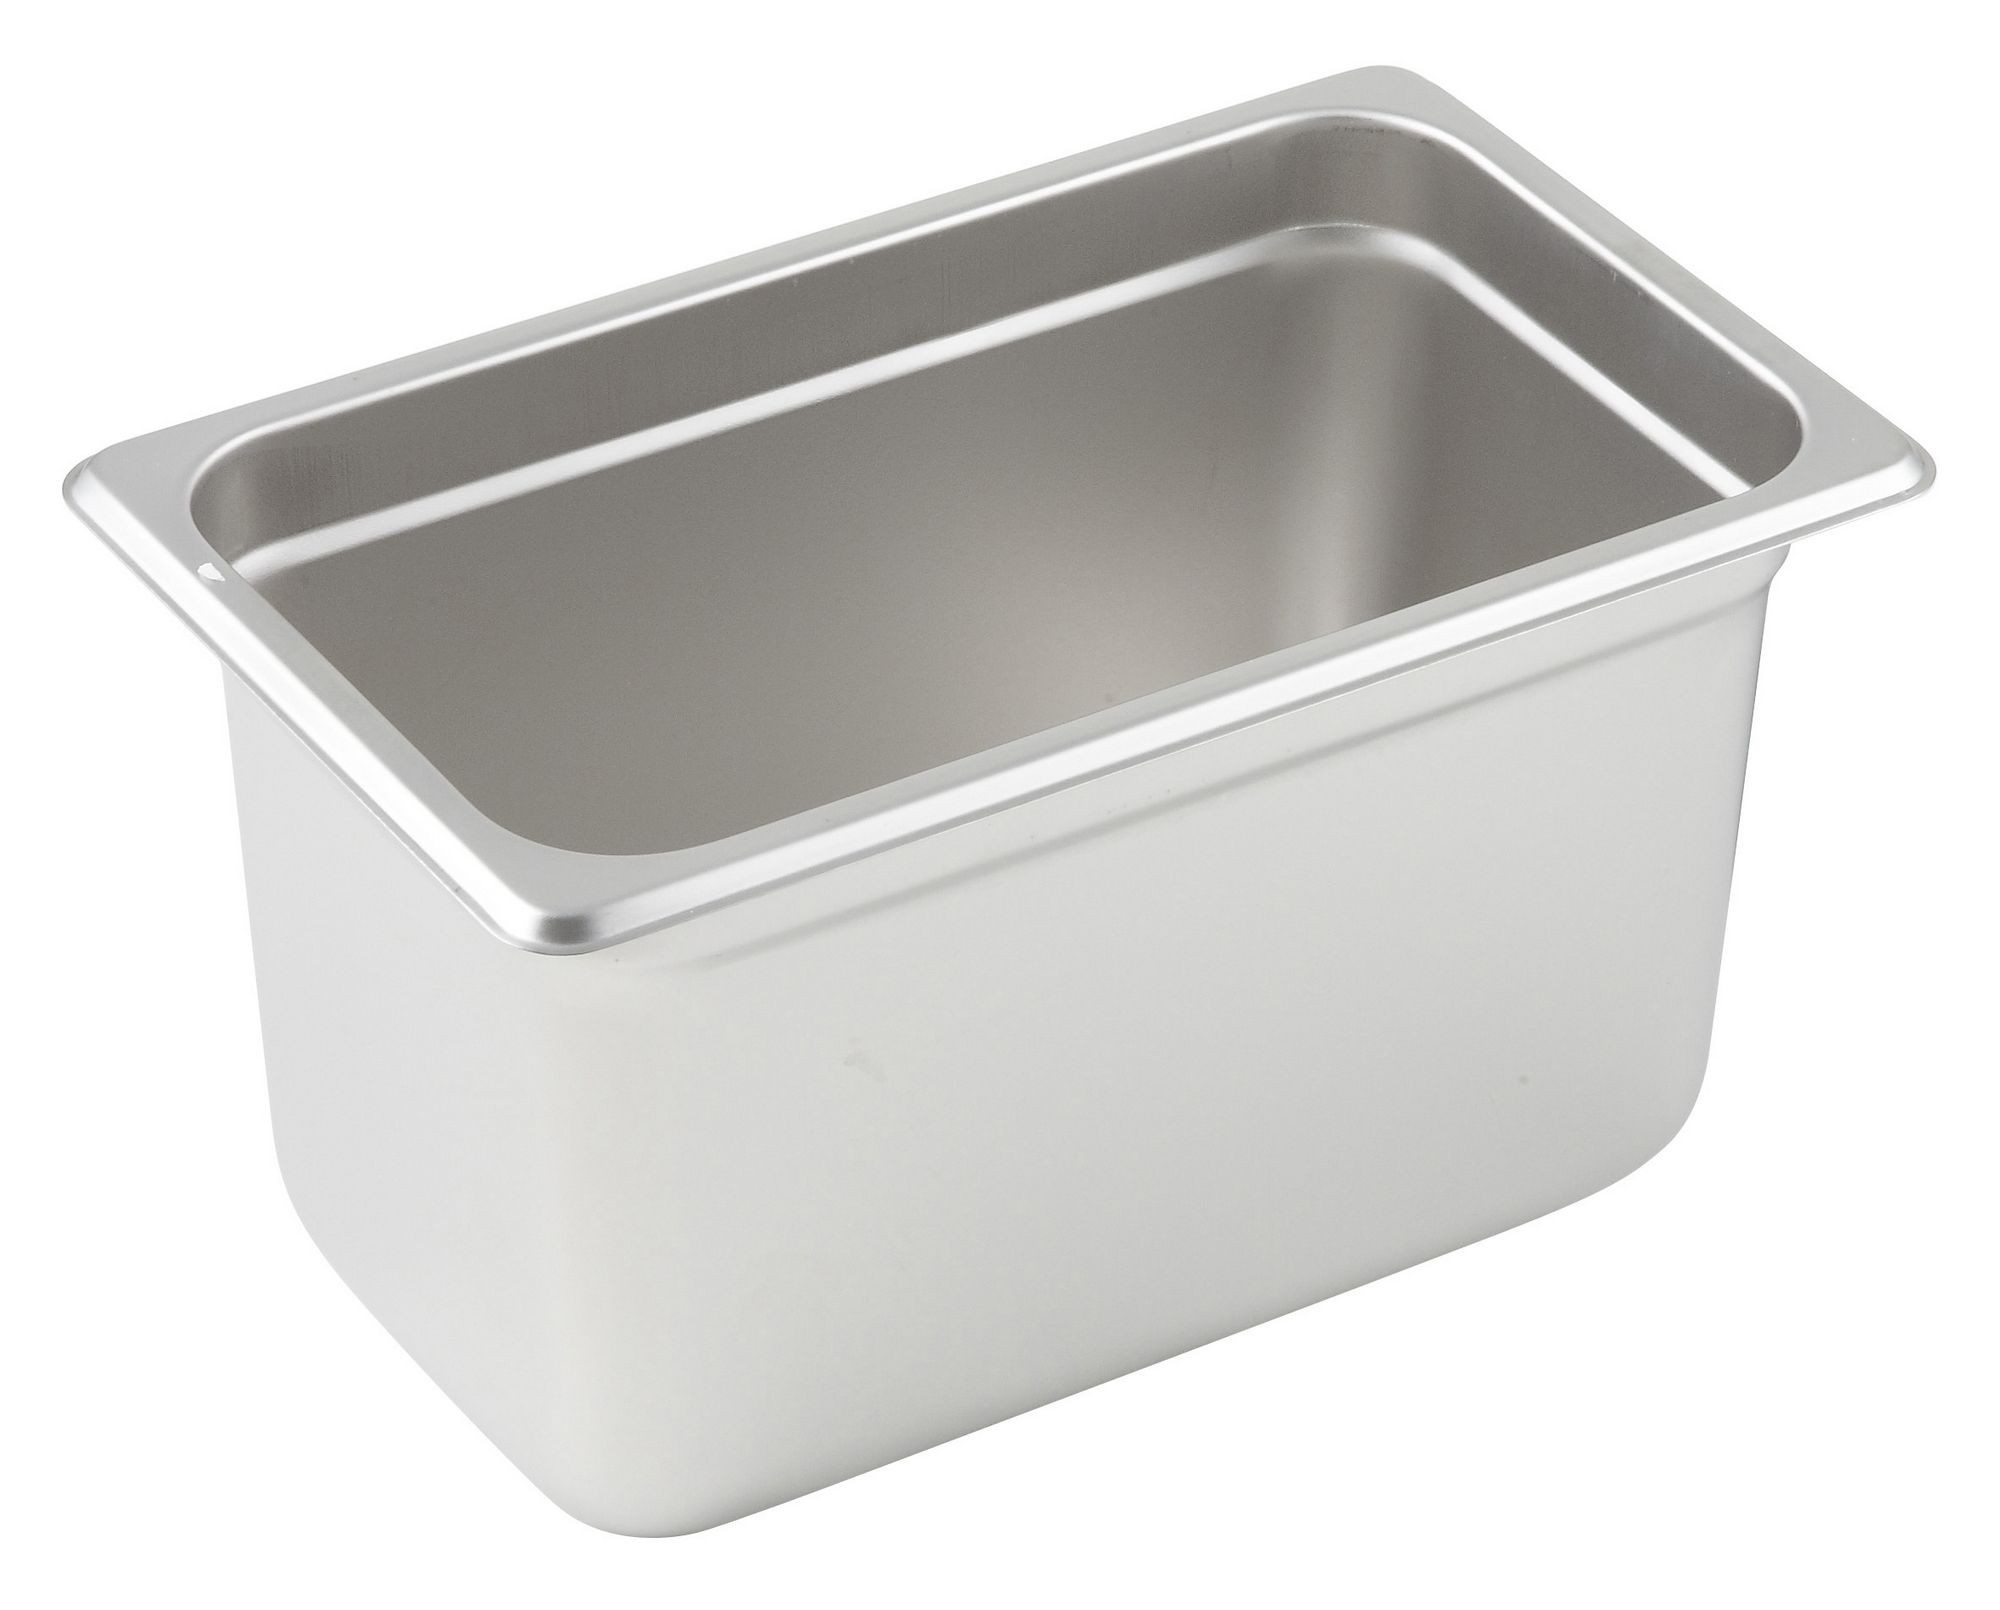 "Winco SPJM-406 1/4 Size Anti-Jam 24 Gauge Steam Table Pan 6"" Deep"